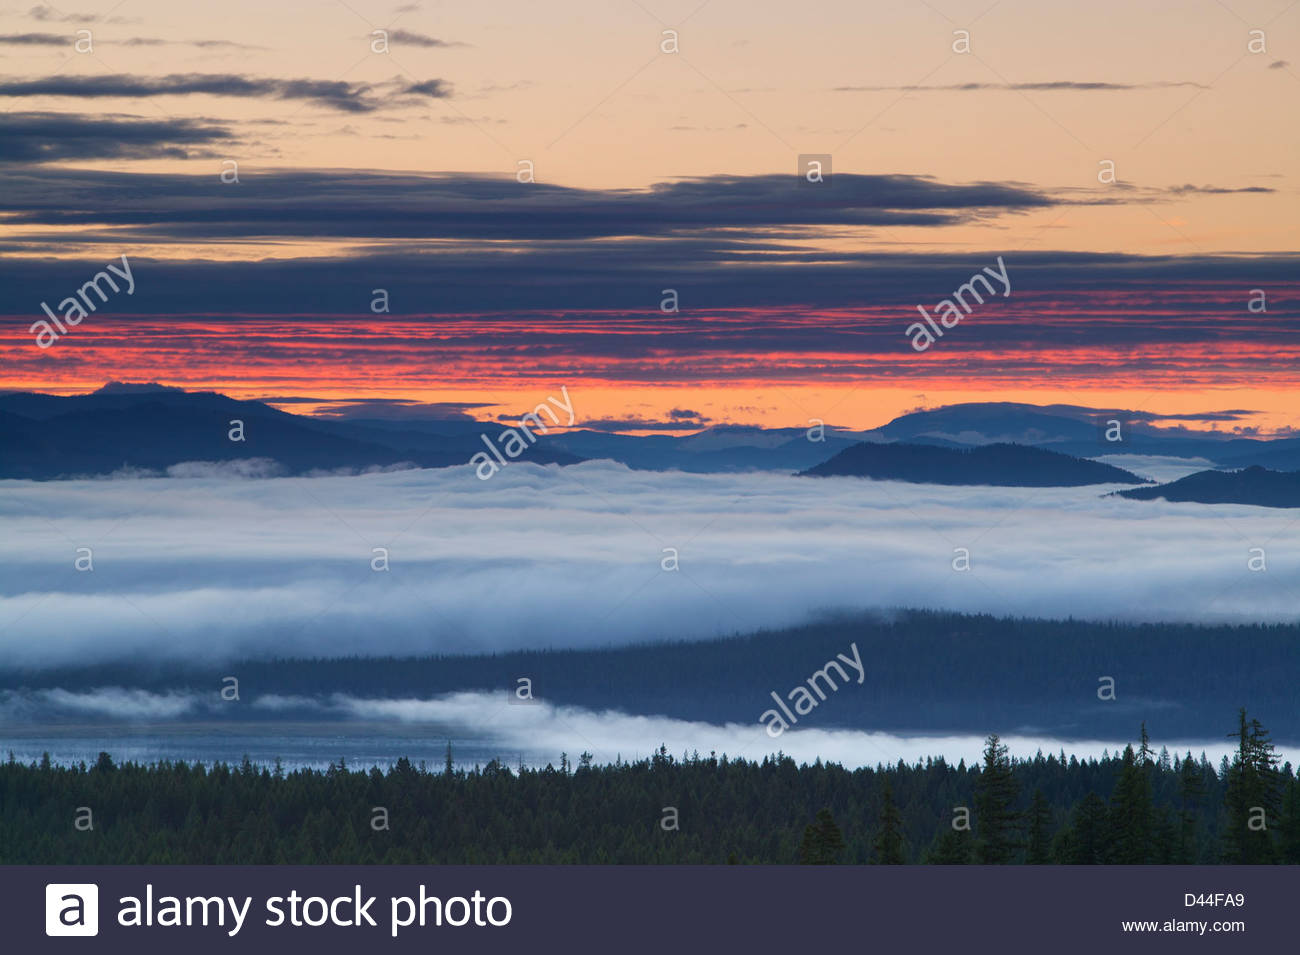 Fog rises from the Pend Oreille River as the sunrise reddens the clouds above mountains near Newport in Washington - Stock Image